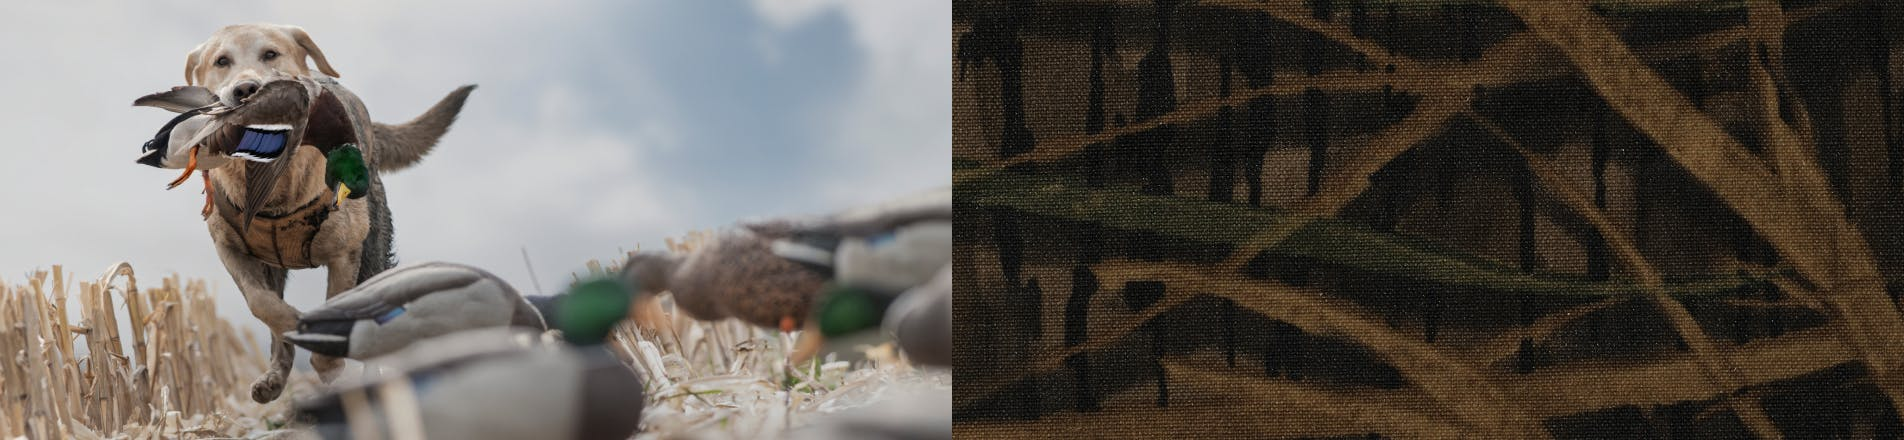 Filson x Ducks Unlimited Collection